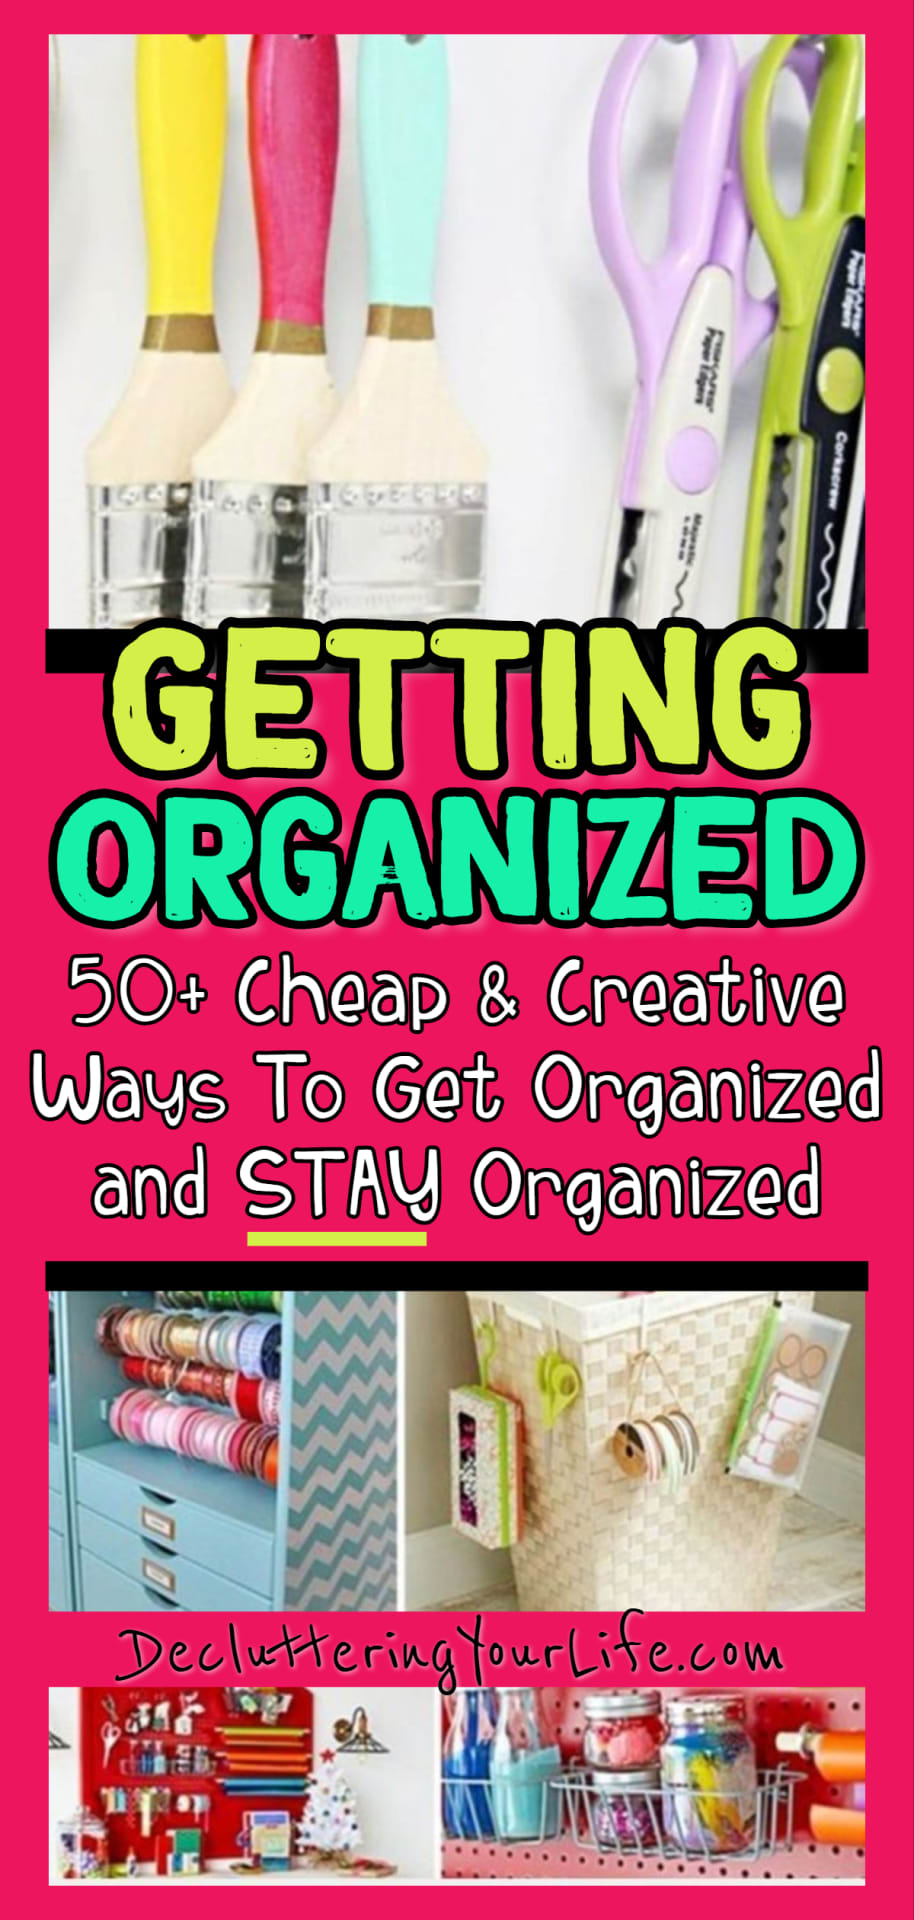 Getting organized and STAYING organized - simple clutter solutions and organizing ideas to declutter your home on a budget